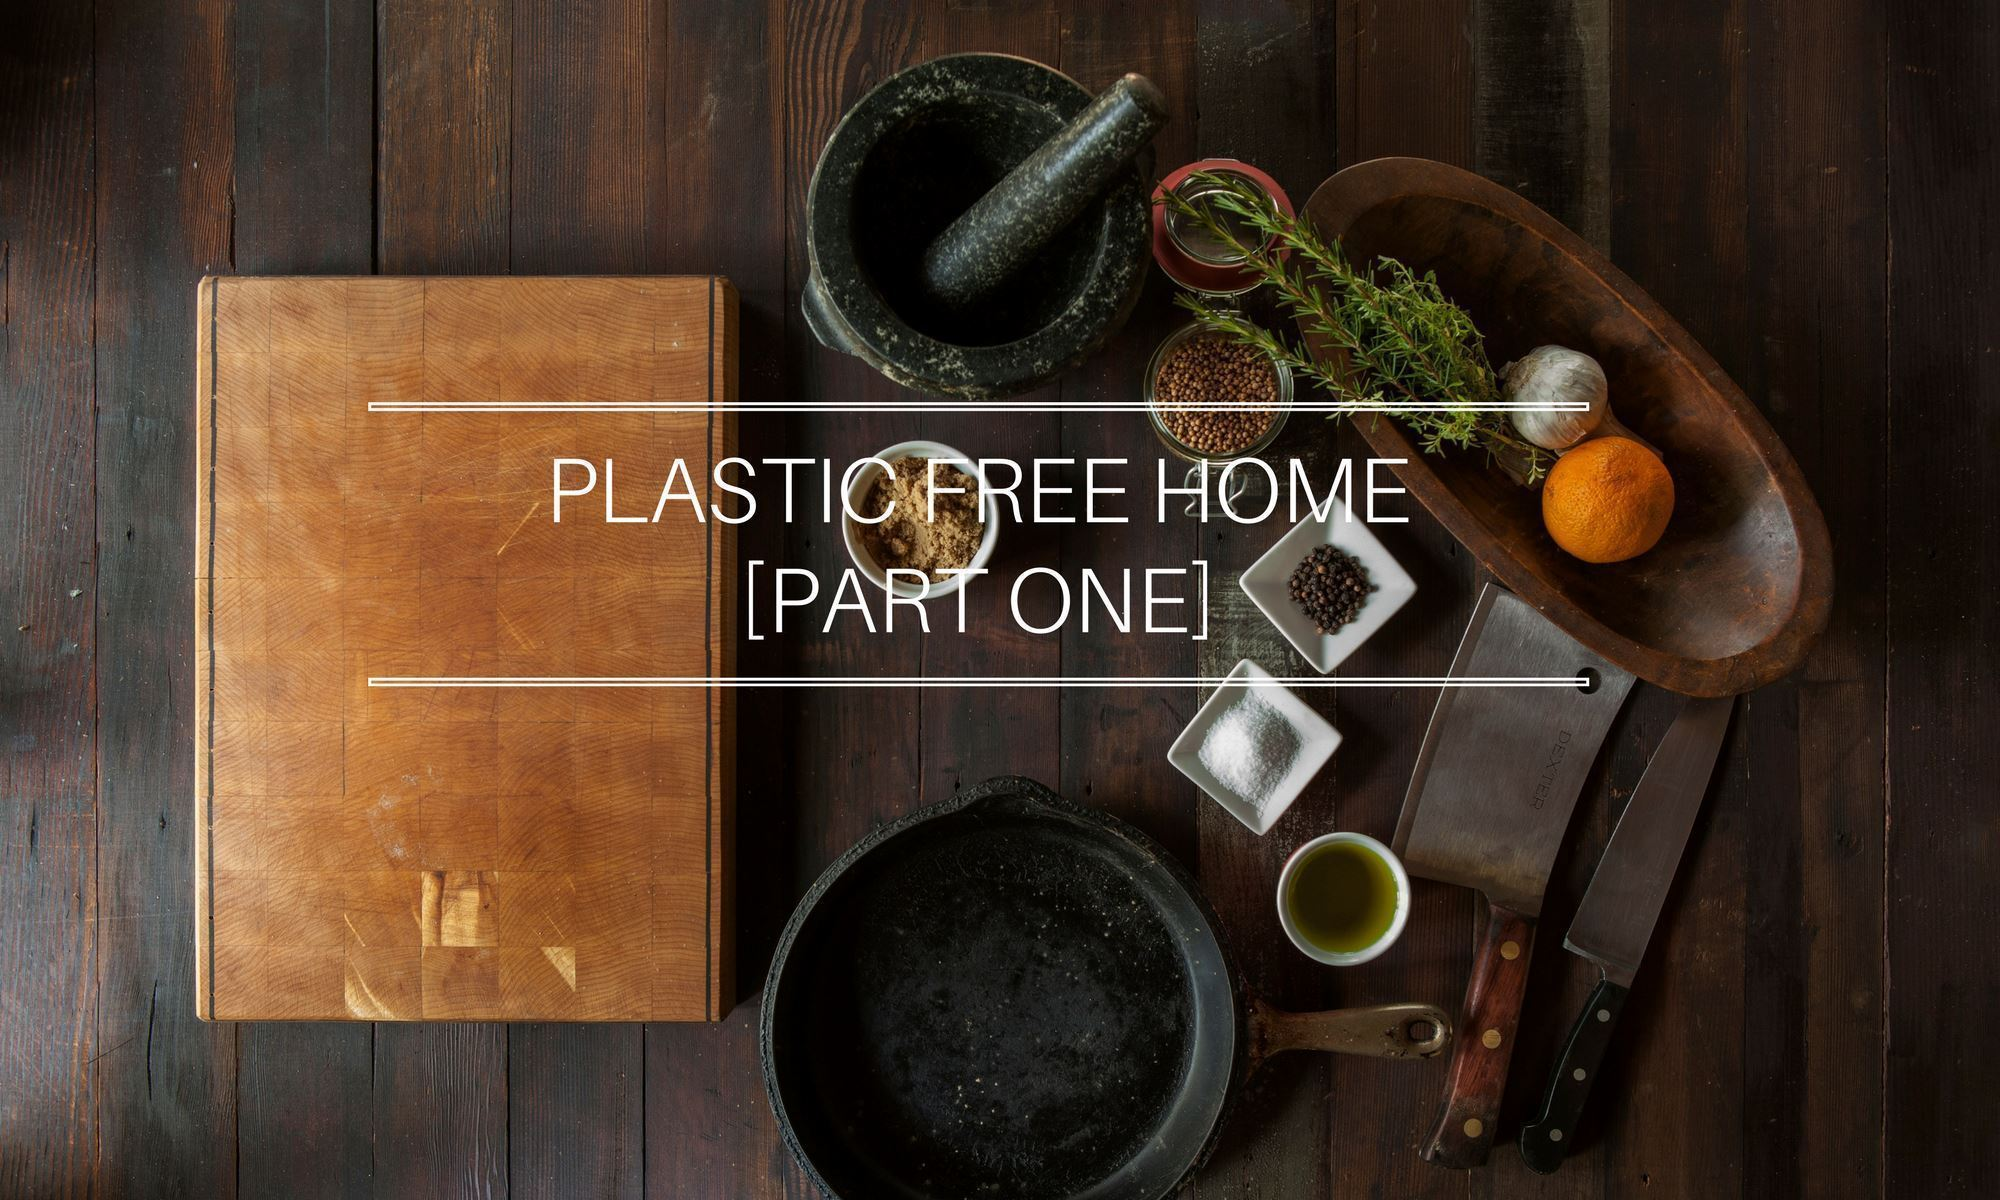 The Plastic Free Home [Part One]